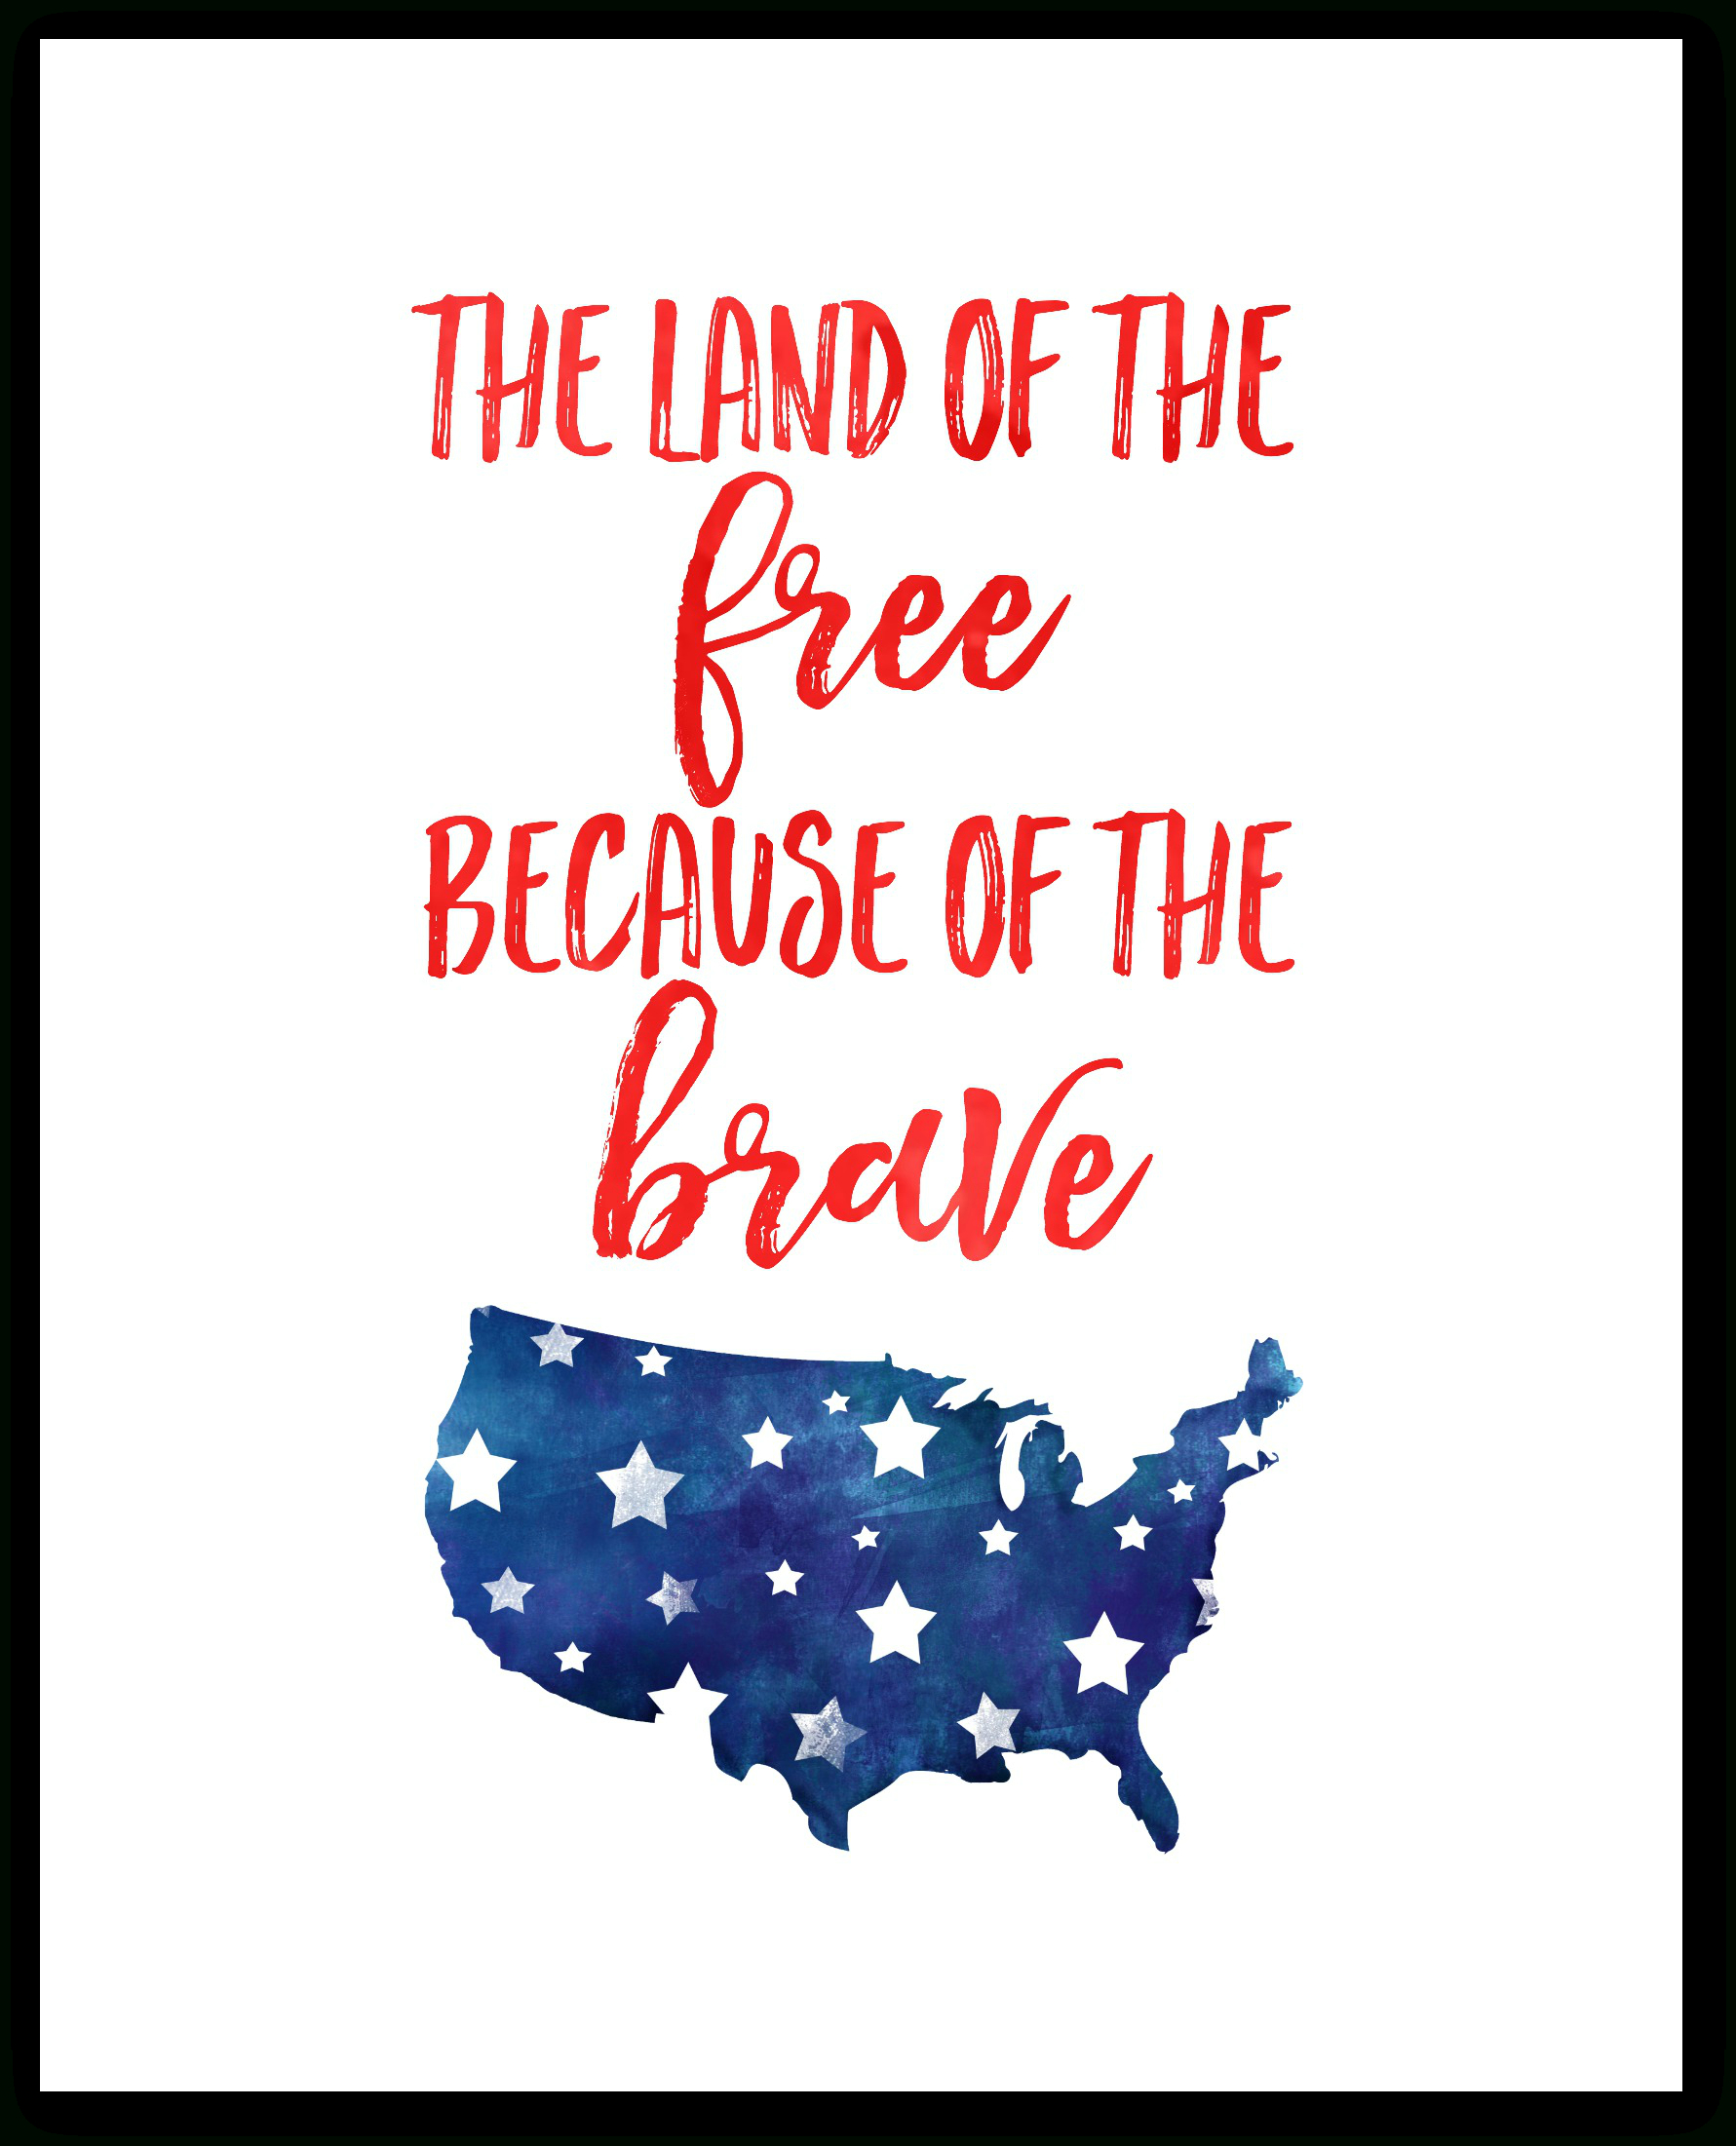 Land Of The Free Because Of The Brave - Home Of The Free Because Of The Brave Printable